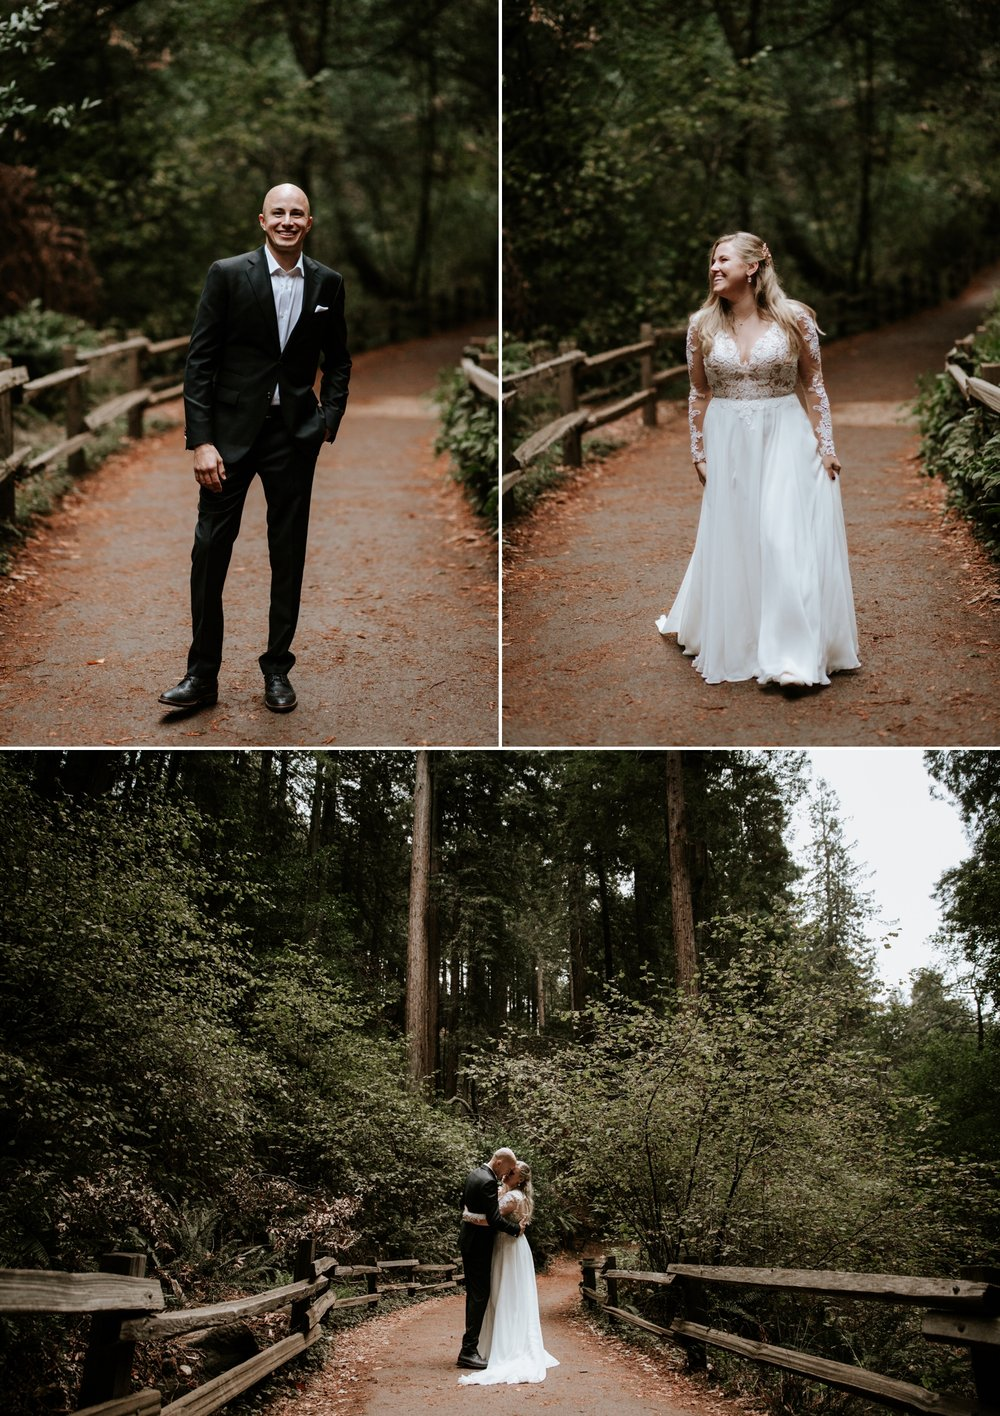 hannah-nick-intimate-muir-woods-wedding-27.jpg